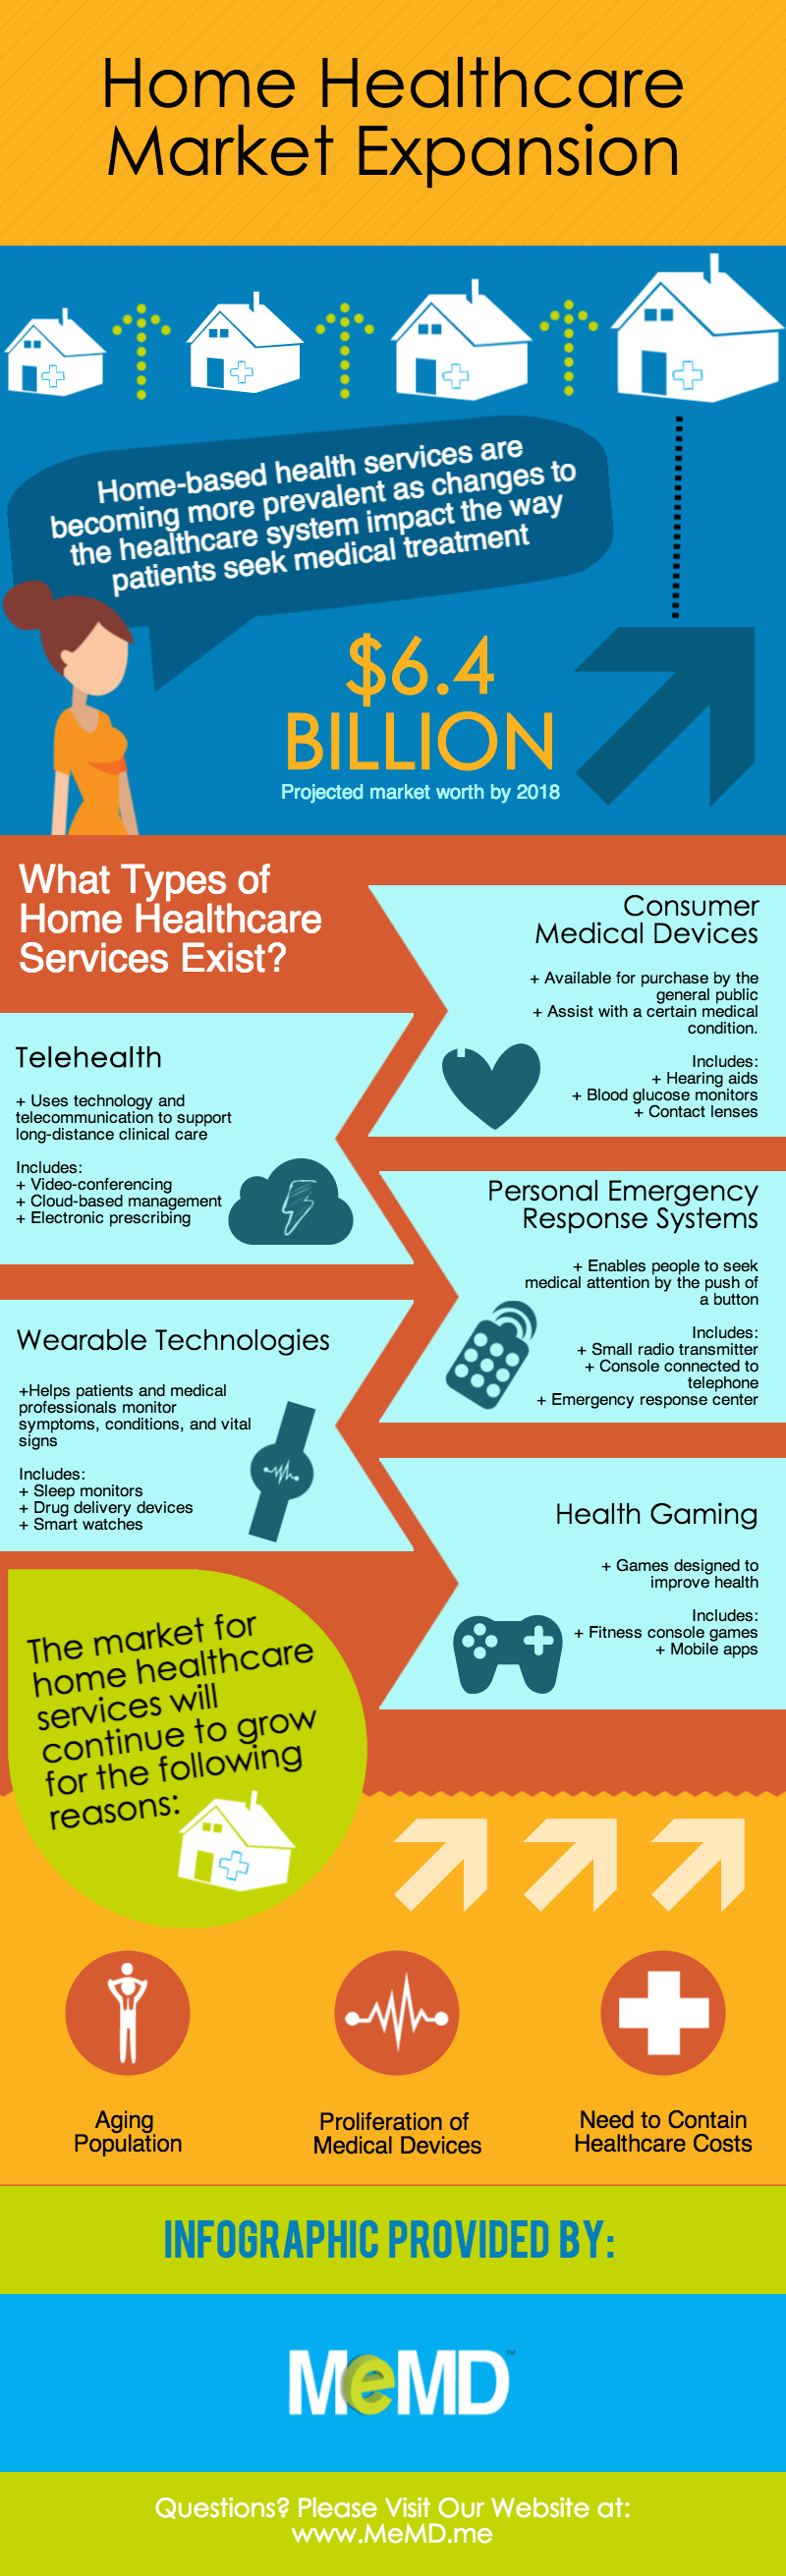 infographic-memd-home-healthcare-market-expansion